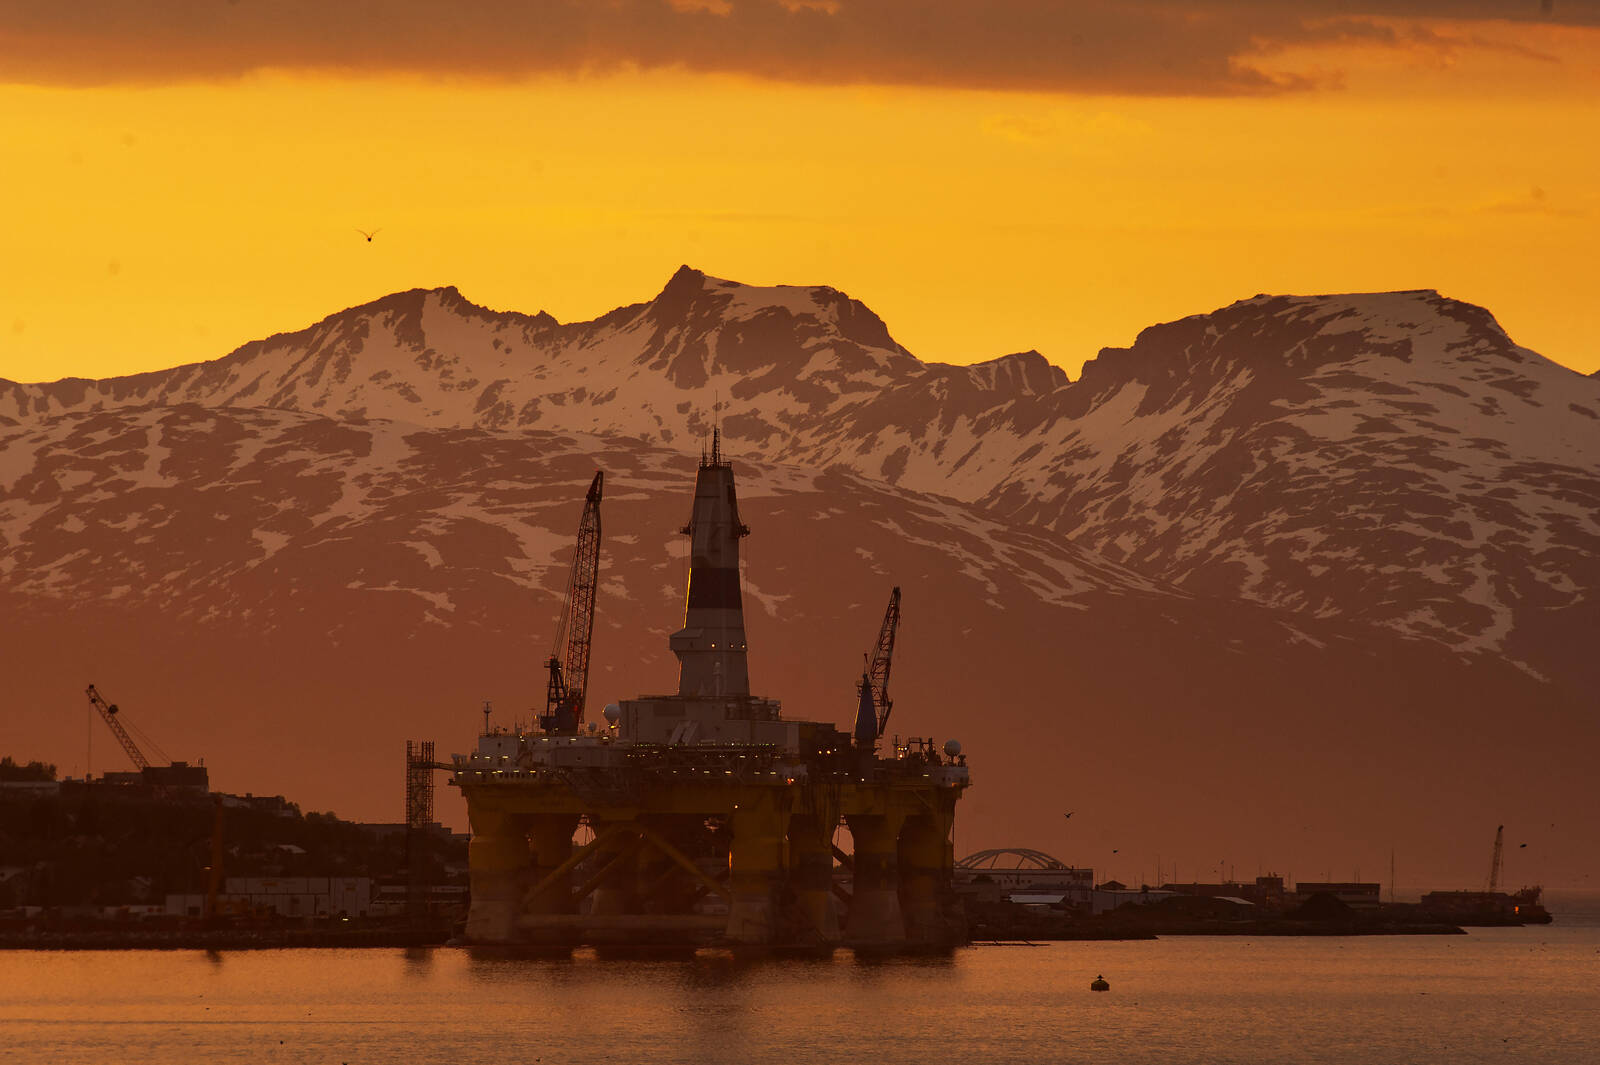 OIl rig in sunset. Credit: Michael Kodas/InsideClimate News